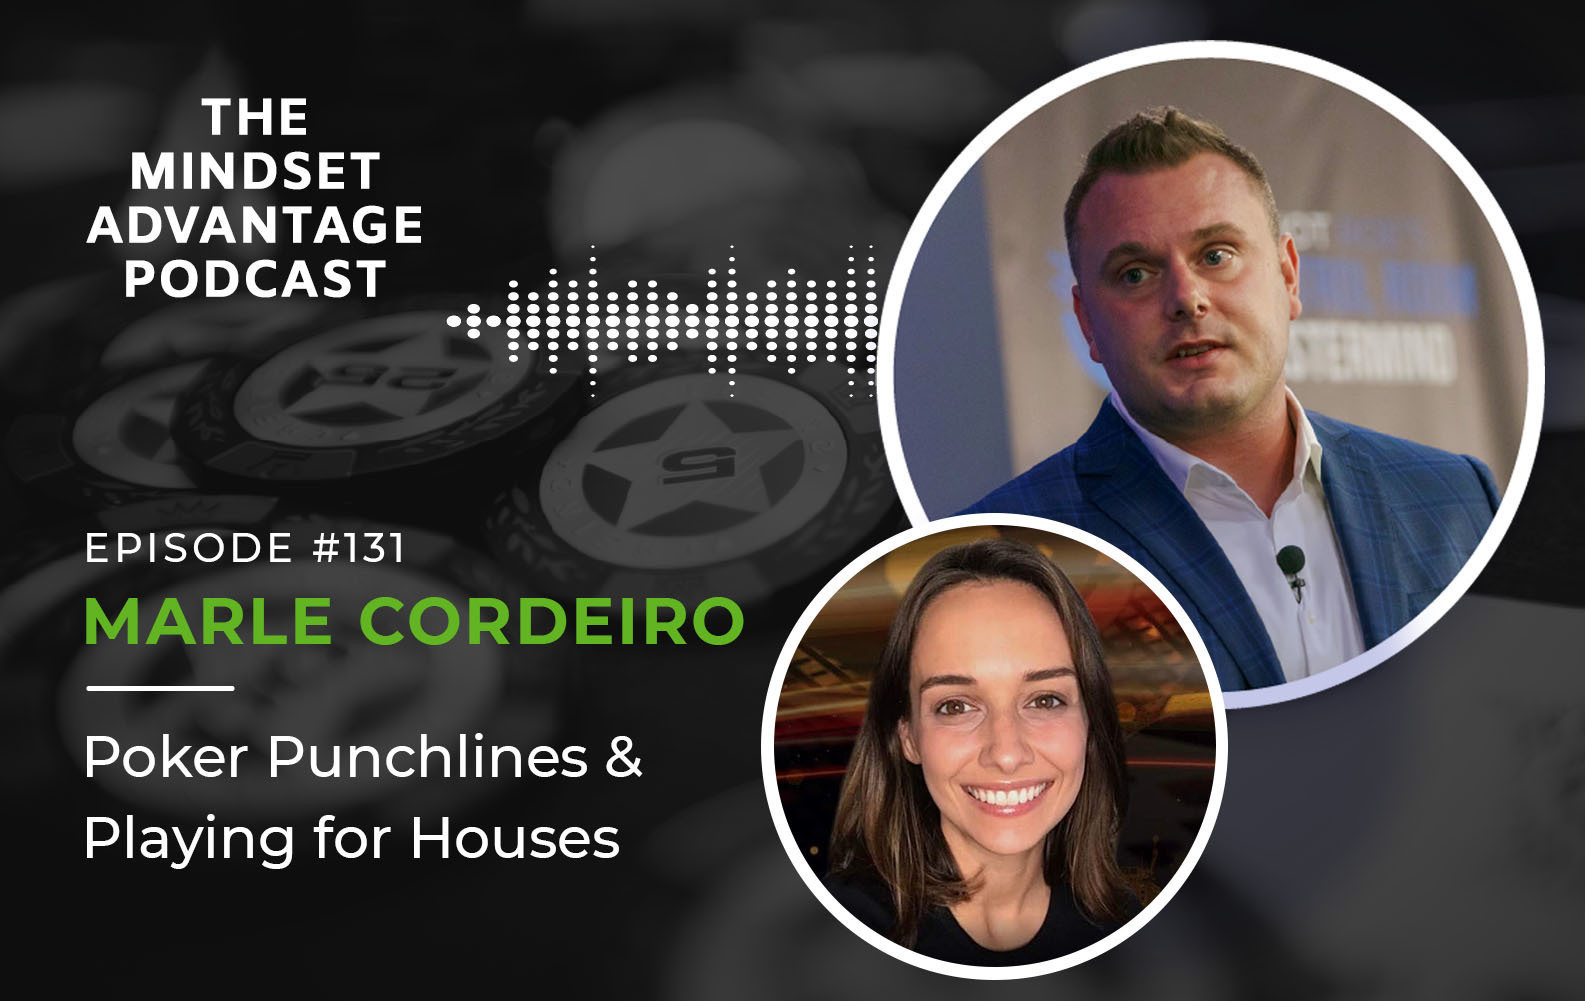 Episode 131 - Marle Cordeiro - Poker Punchlines and Playing for Houses